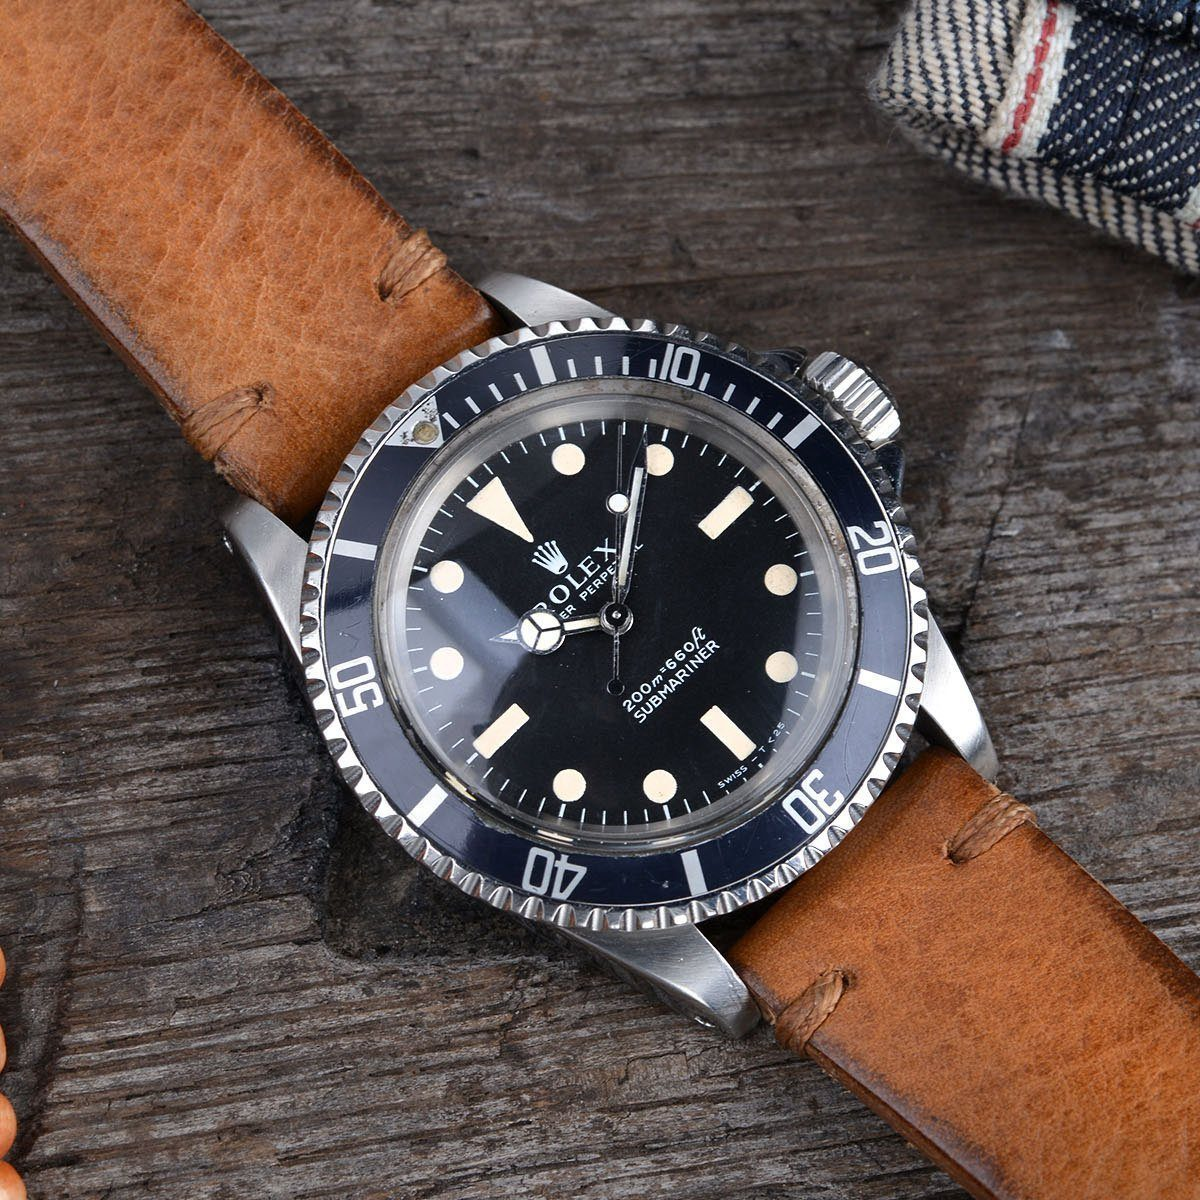 vintage-rolex-precision-watches